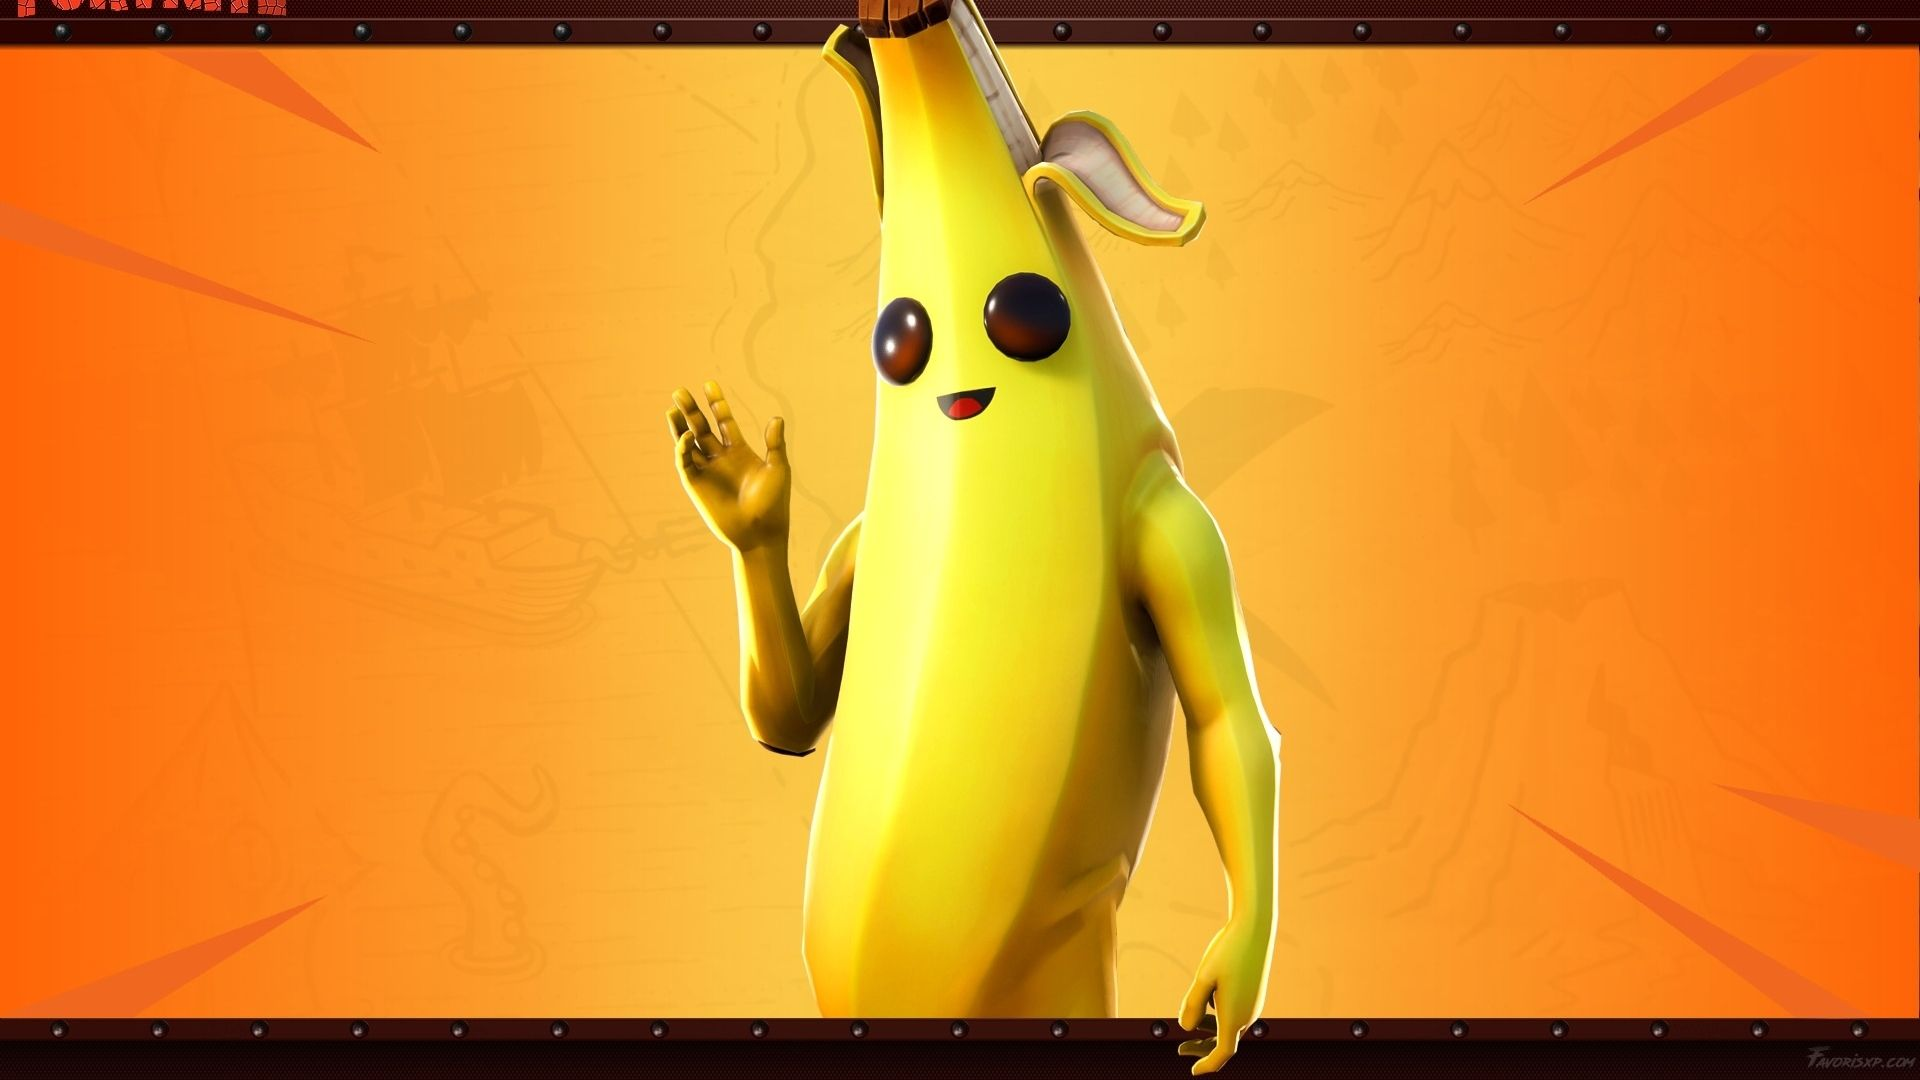 Banana Skin Fortnite Wallpapers Wallpaper Cave